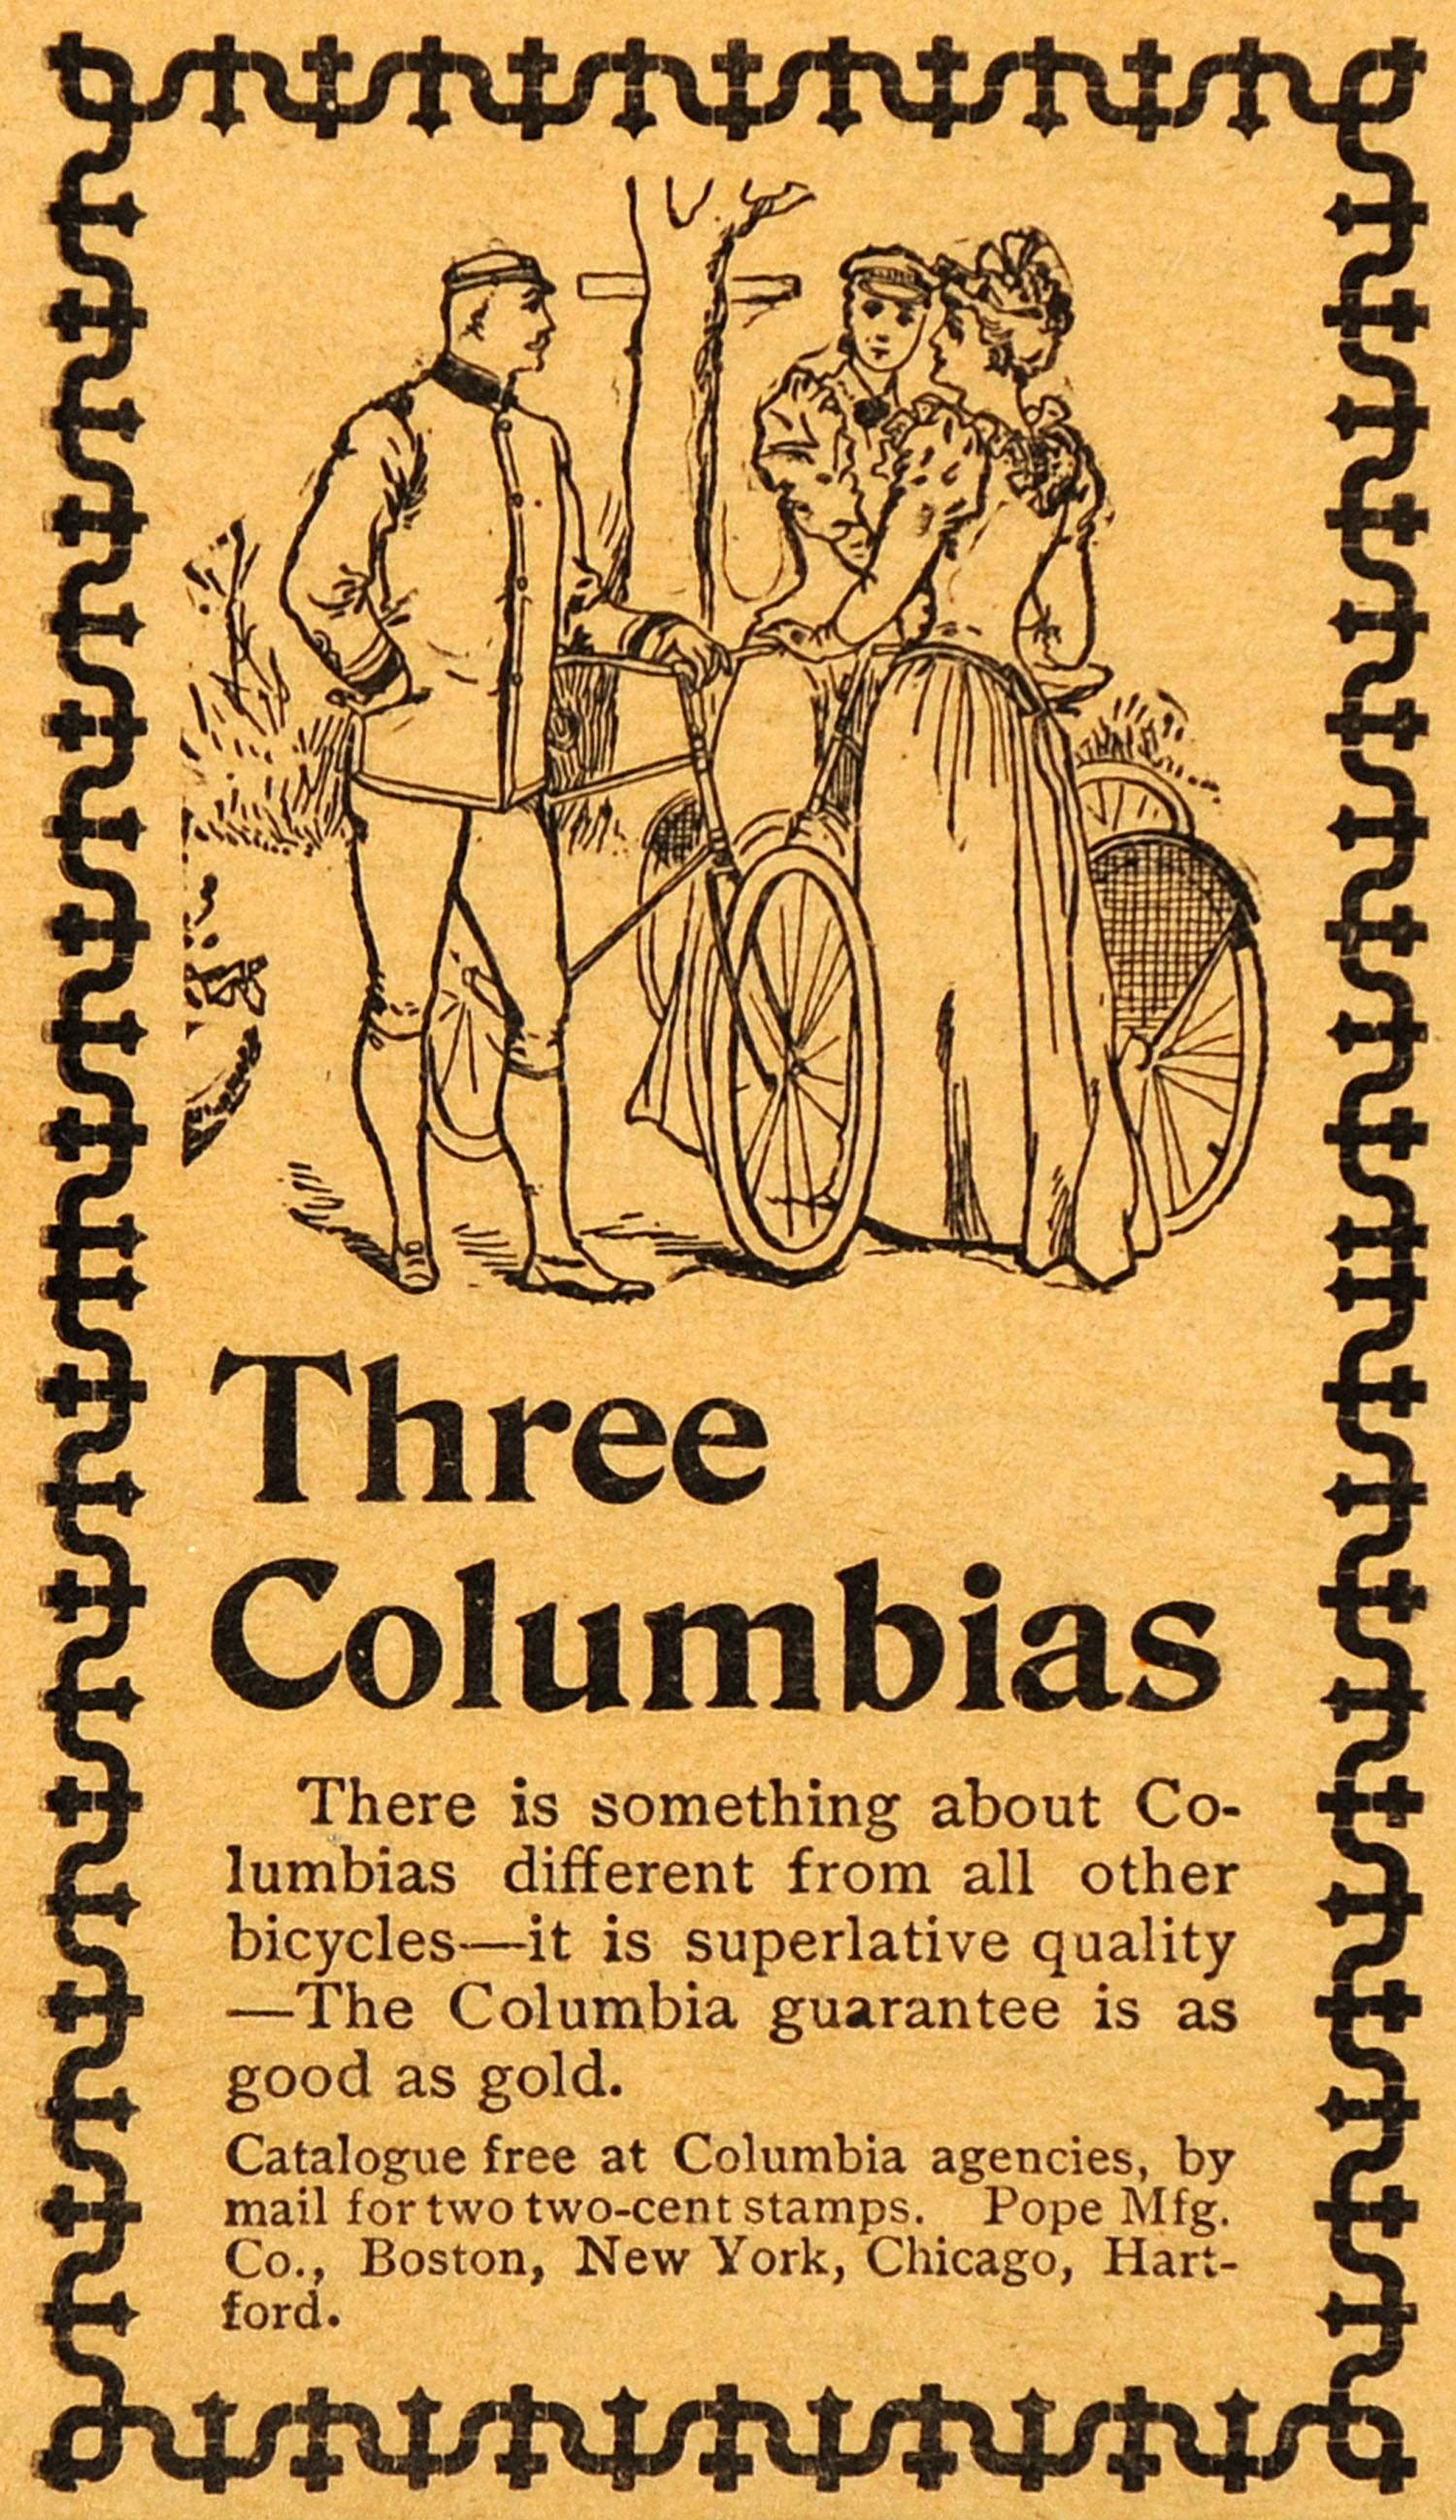 1893 Ad Columbia Bicycles Antique Pope Edwardian Fashion Biking Cycling AAG1